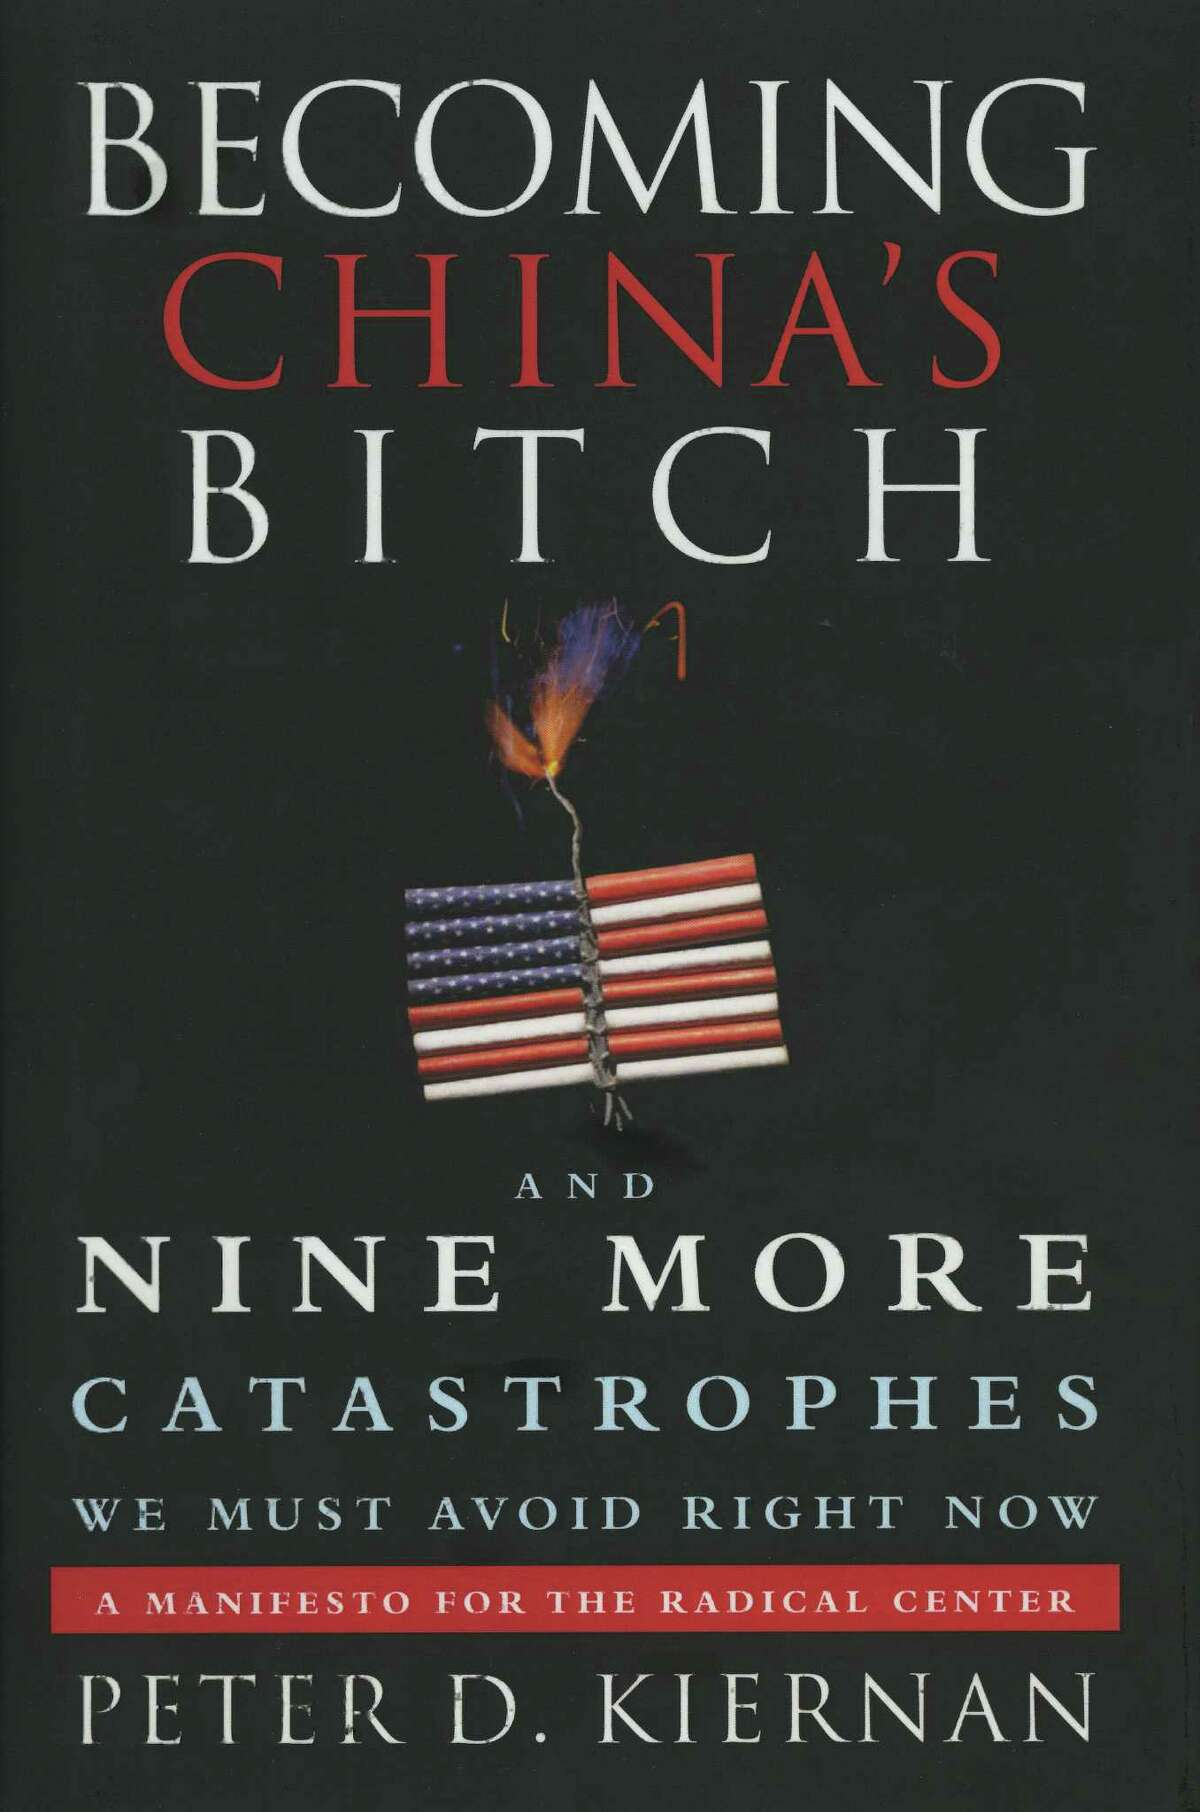 """Former Goldman Sachs partner and Greenwich resident Peter Kiernan's first book, """"Becoming China's Bitch -And Nine More Catastrophes We Must Avoid Right Now,"""" earned him the International Book Award."""